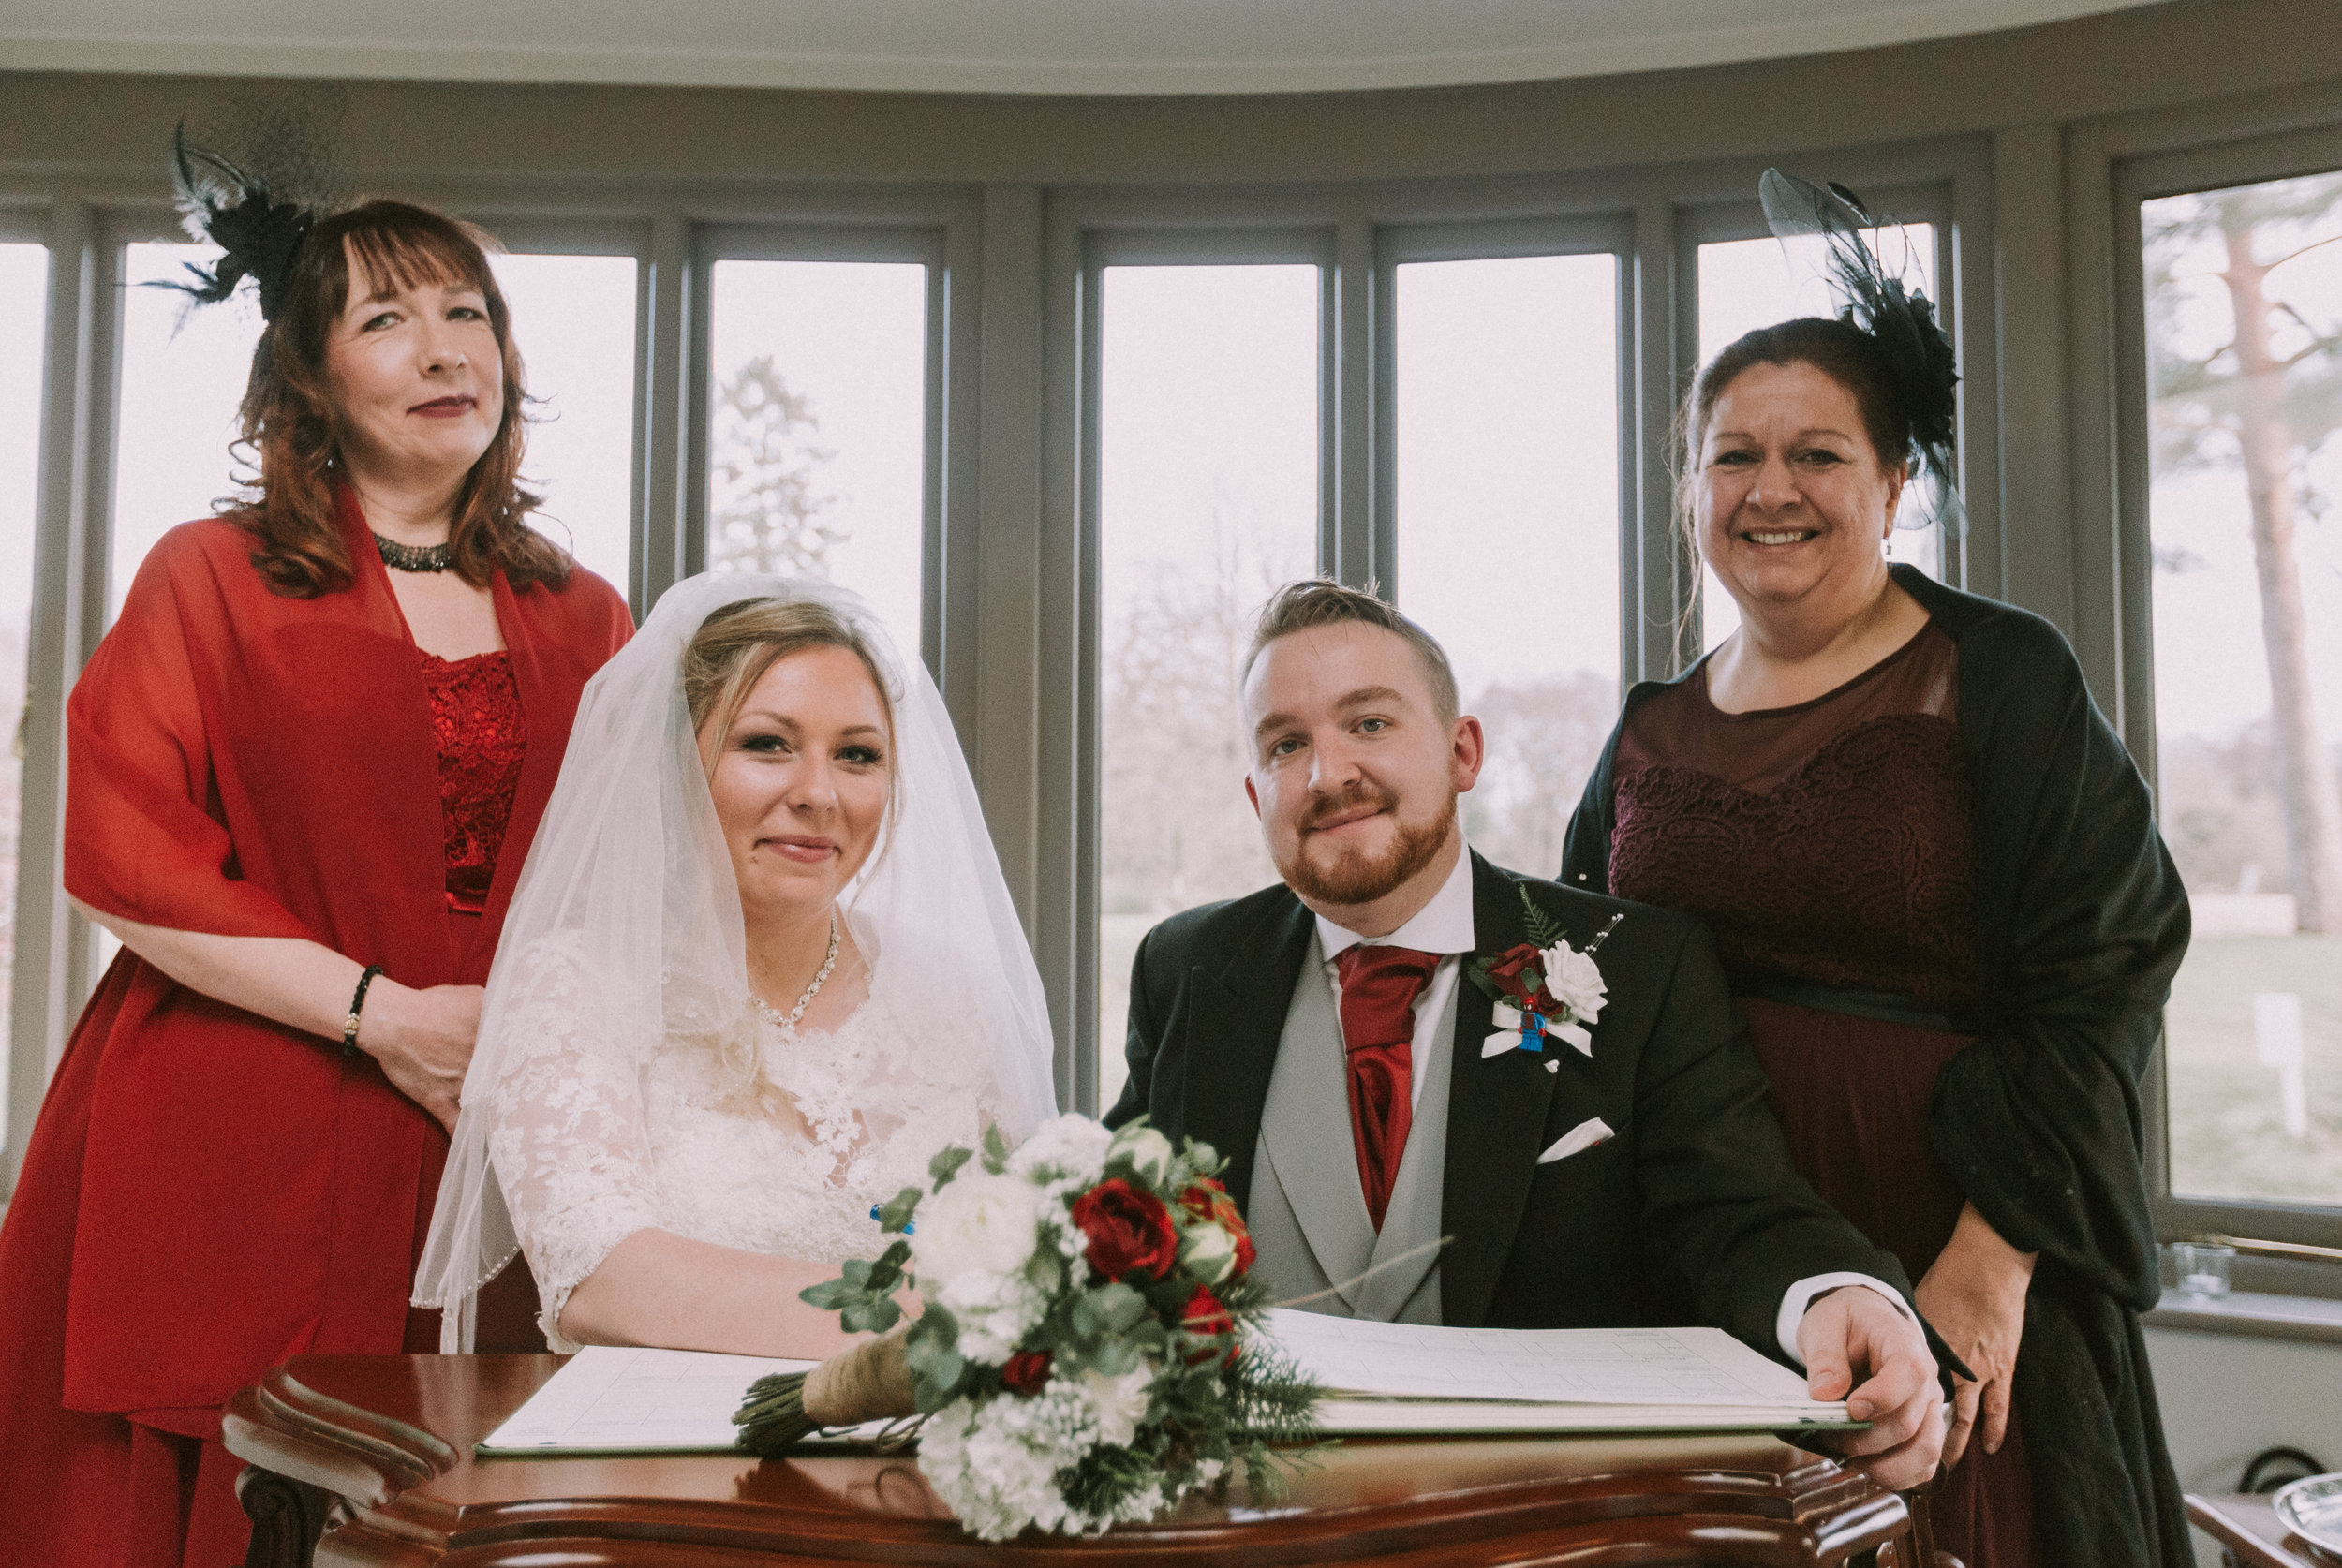 southdowns-manor-sussex-winter-wedding-photography-civil-ceremony-60